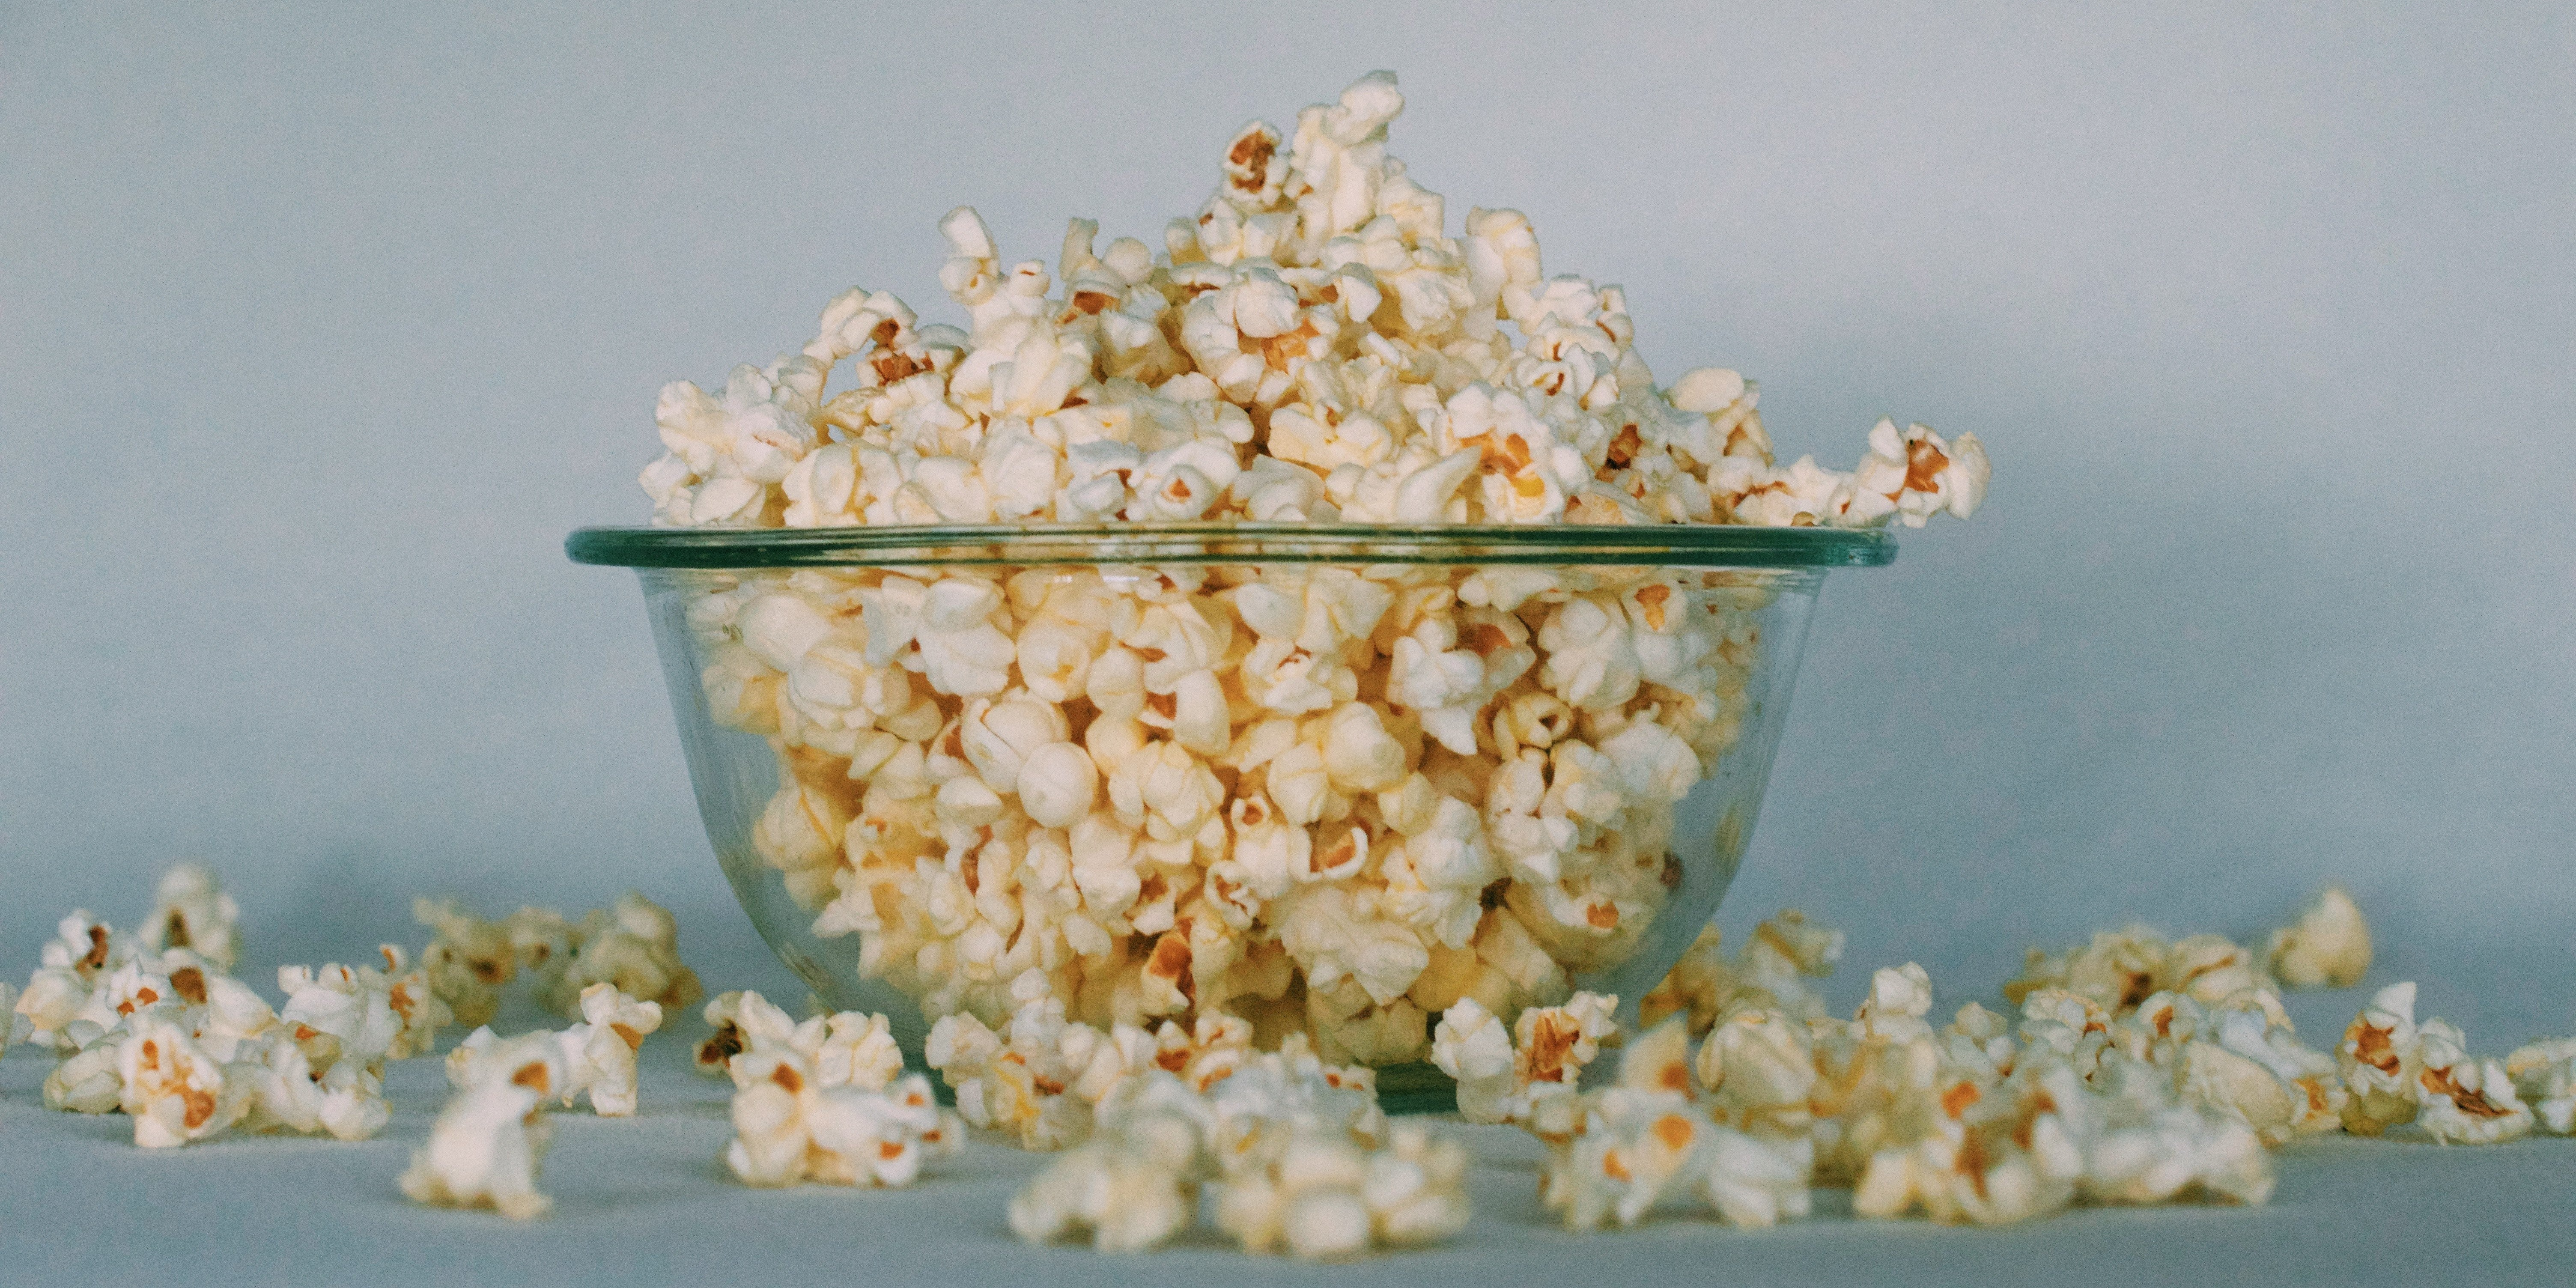 sales strategy lessons from movies